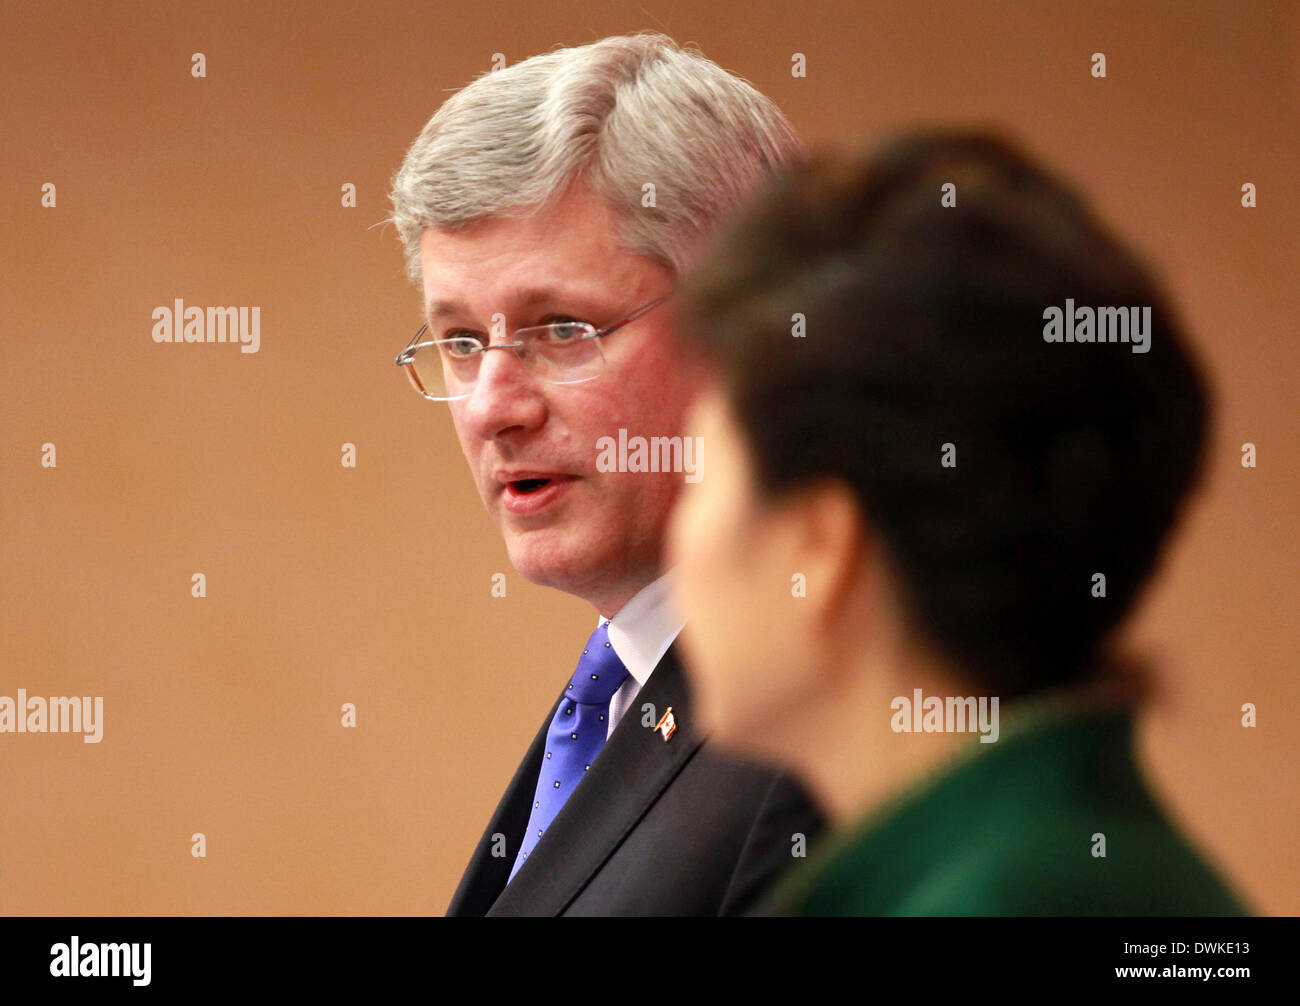 Seoul, South Korea. 11th Mar, 2014. South Korean President Park Geun-Hye (Front) and Canadian Prime Minister Stephen Harper hold a joint press conference at the presidential Blue House in Seoul, South Korea, March 11, 2014. South Korea and Canada finalized years of negotiations on their free trade agreement (FTA) on Tuesday after talks between Park Geun-hye and Stephen Harper. © Park Jin-hee/Xinhua/Alamy Live News - Stock Image